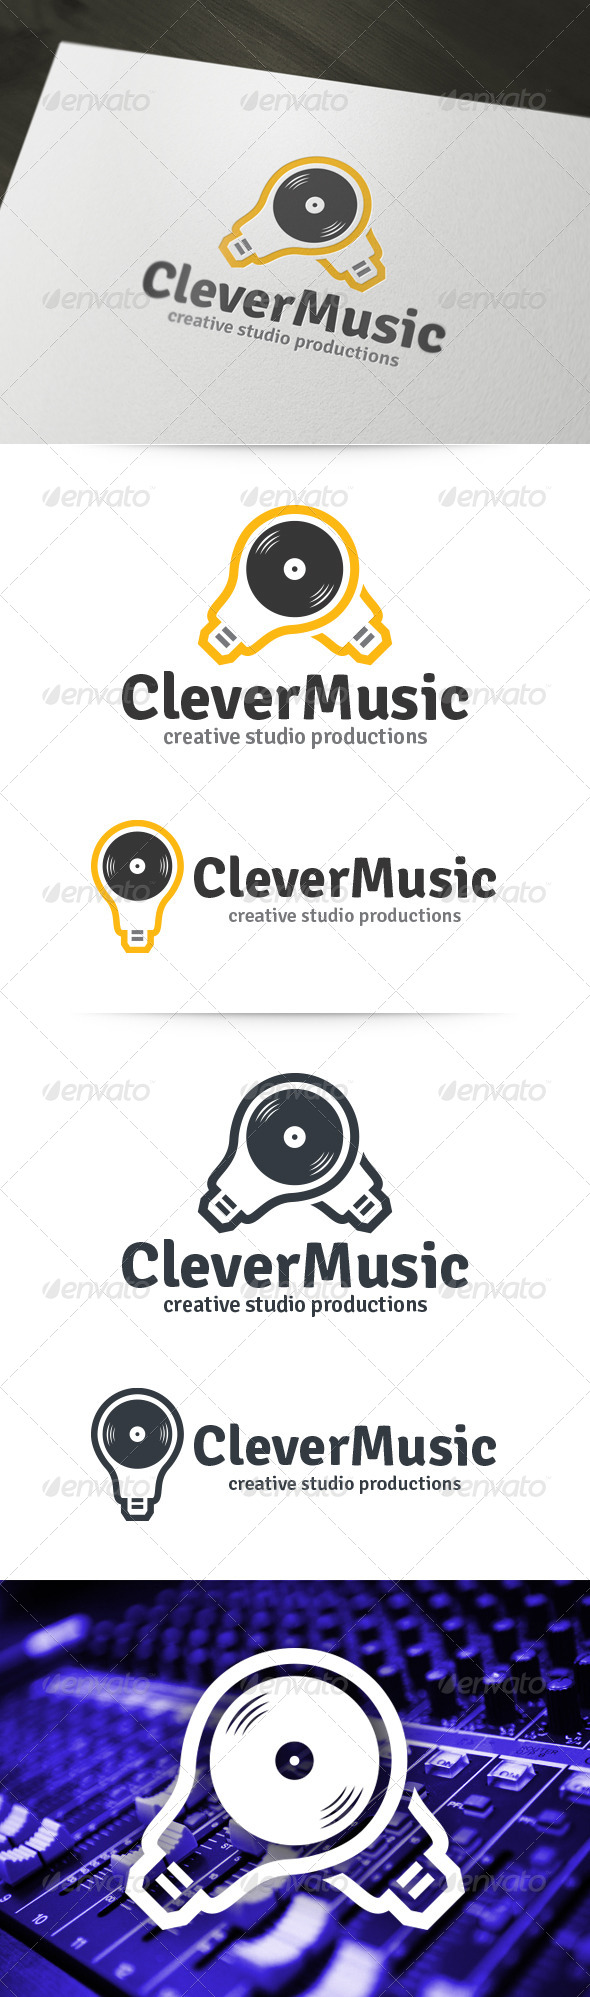 Clever Music Logo - Objects Logo Templates